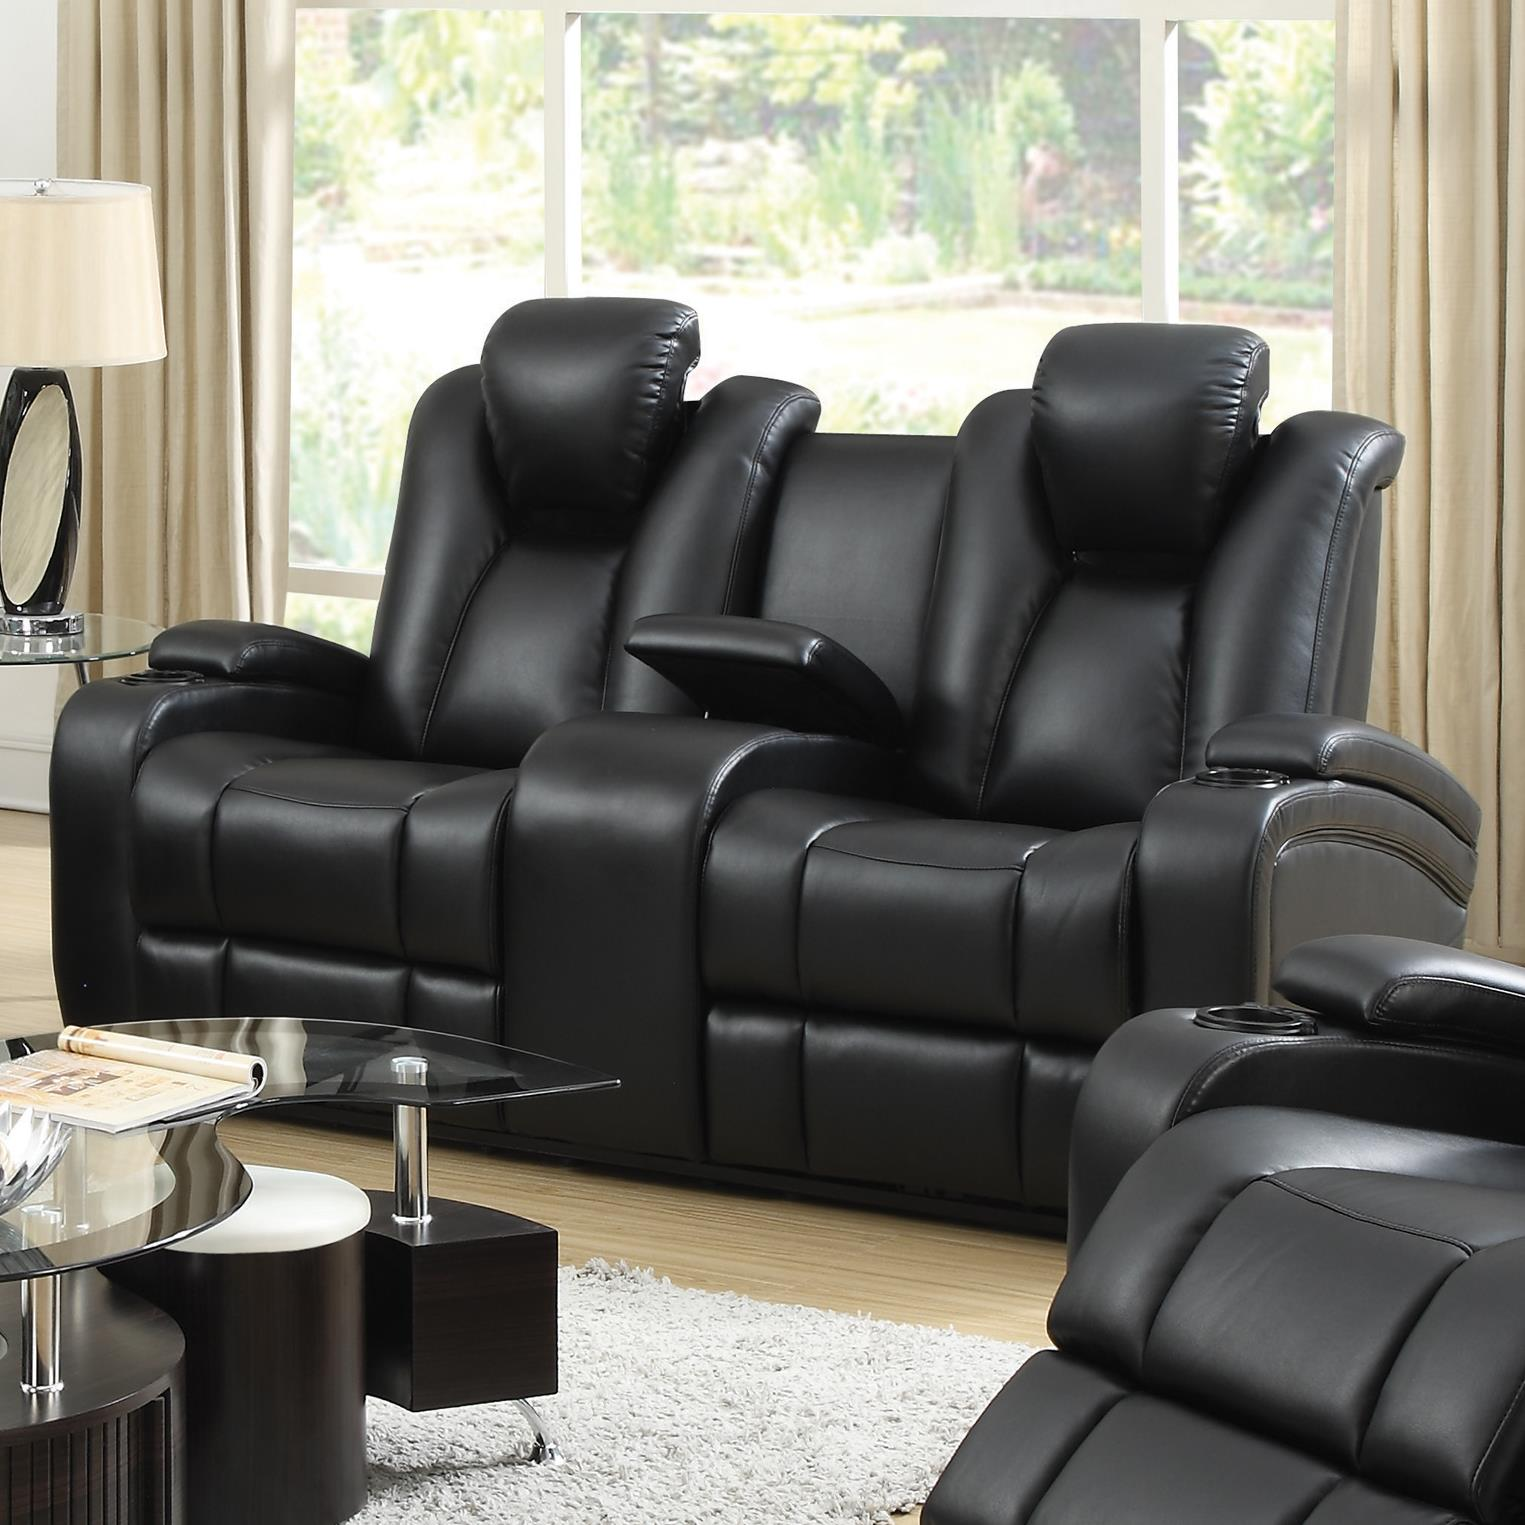 Double Recliner Chair Delange Reclining Power Loveseat With Adjustable Headrests Storage In Armrests By Coaster At Lapeer Furniture Mattress Center